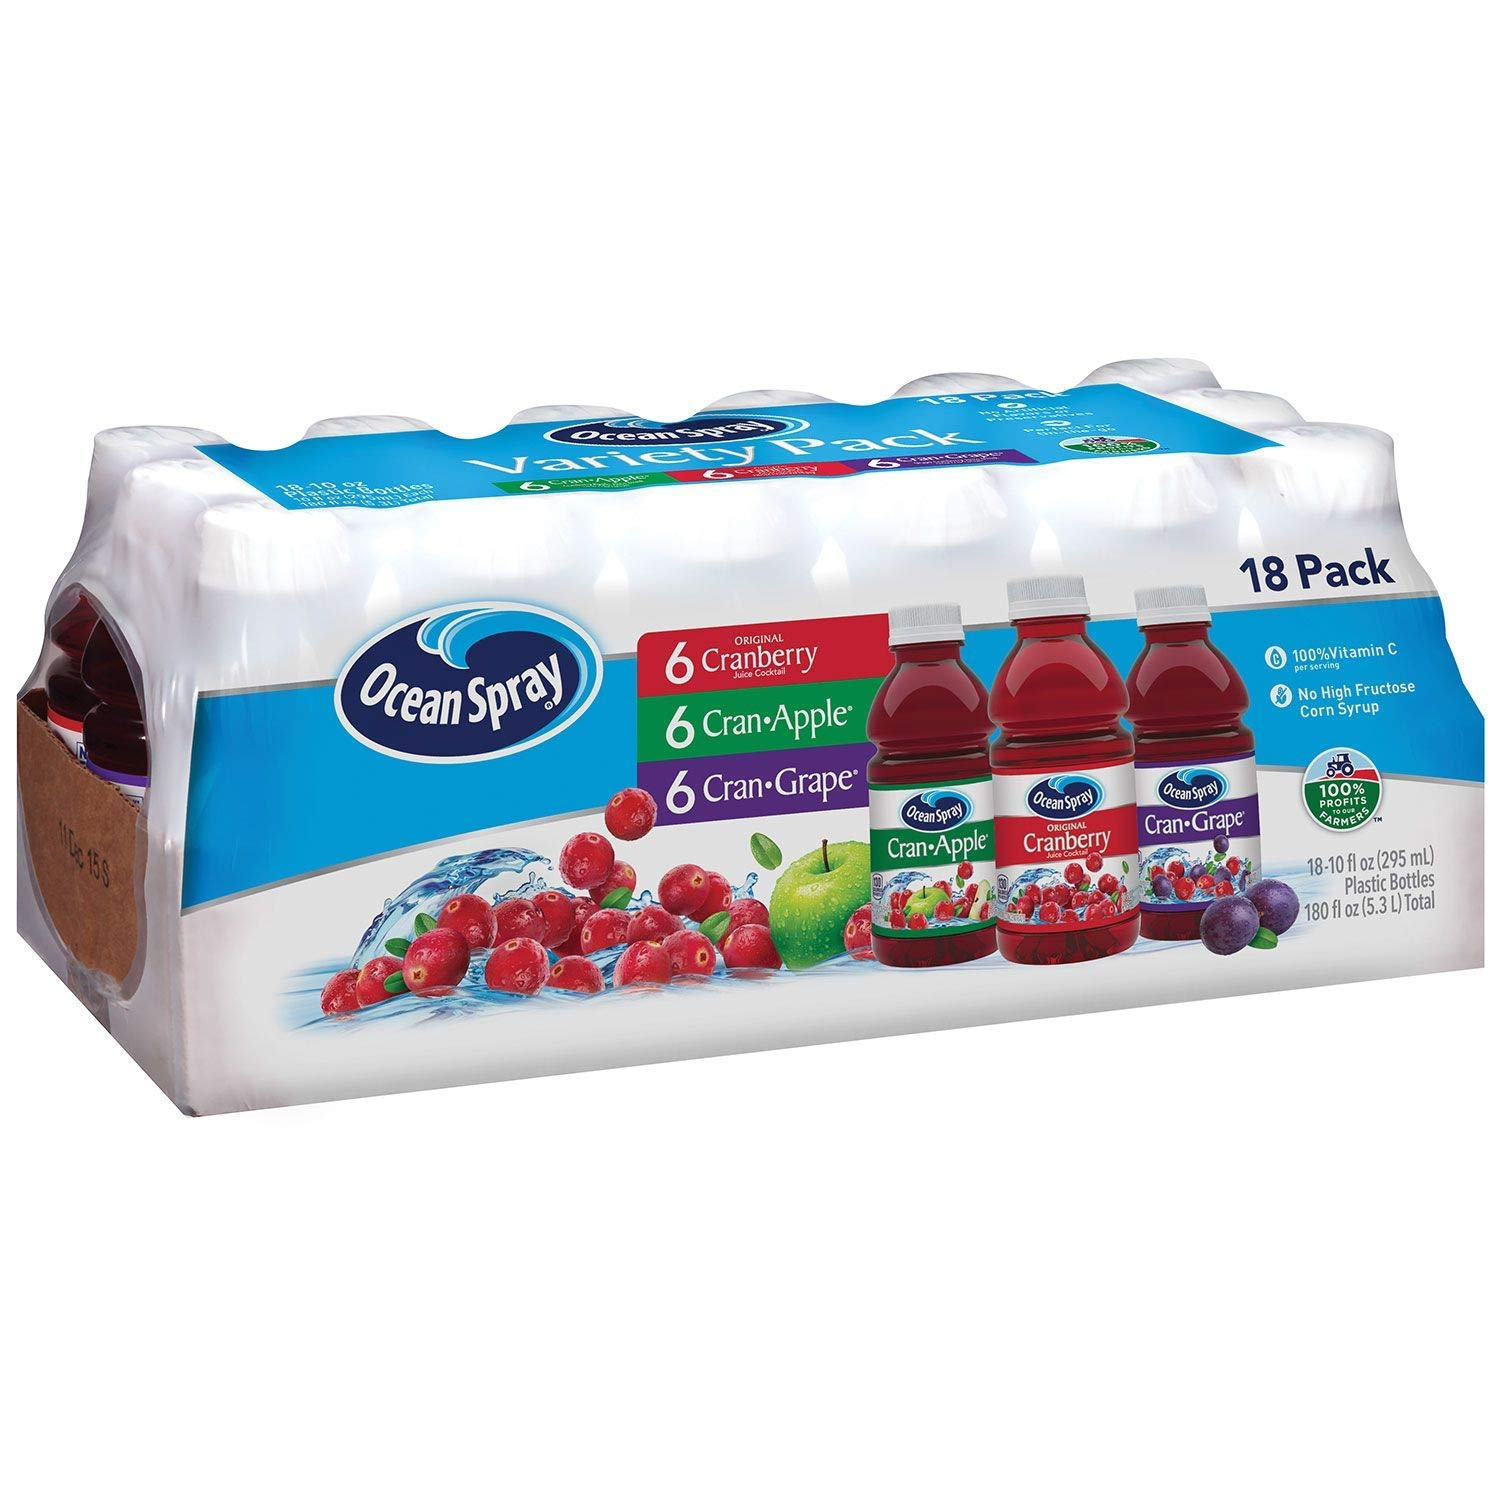 Ocean Spray Juice Drink Variety Pack oz 10 pk. 2 18 of Manufacturer direct delivery Year-end gift